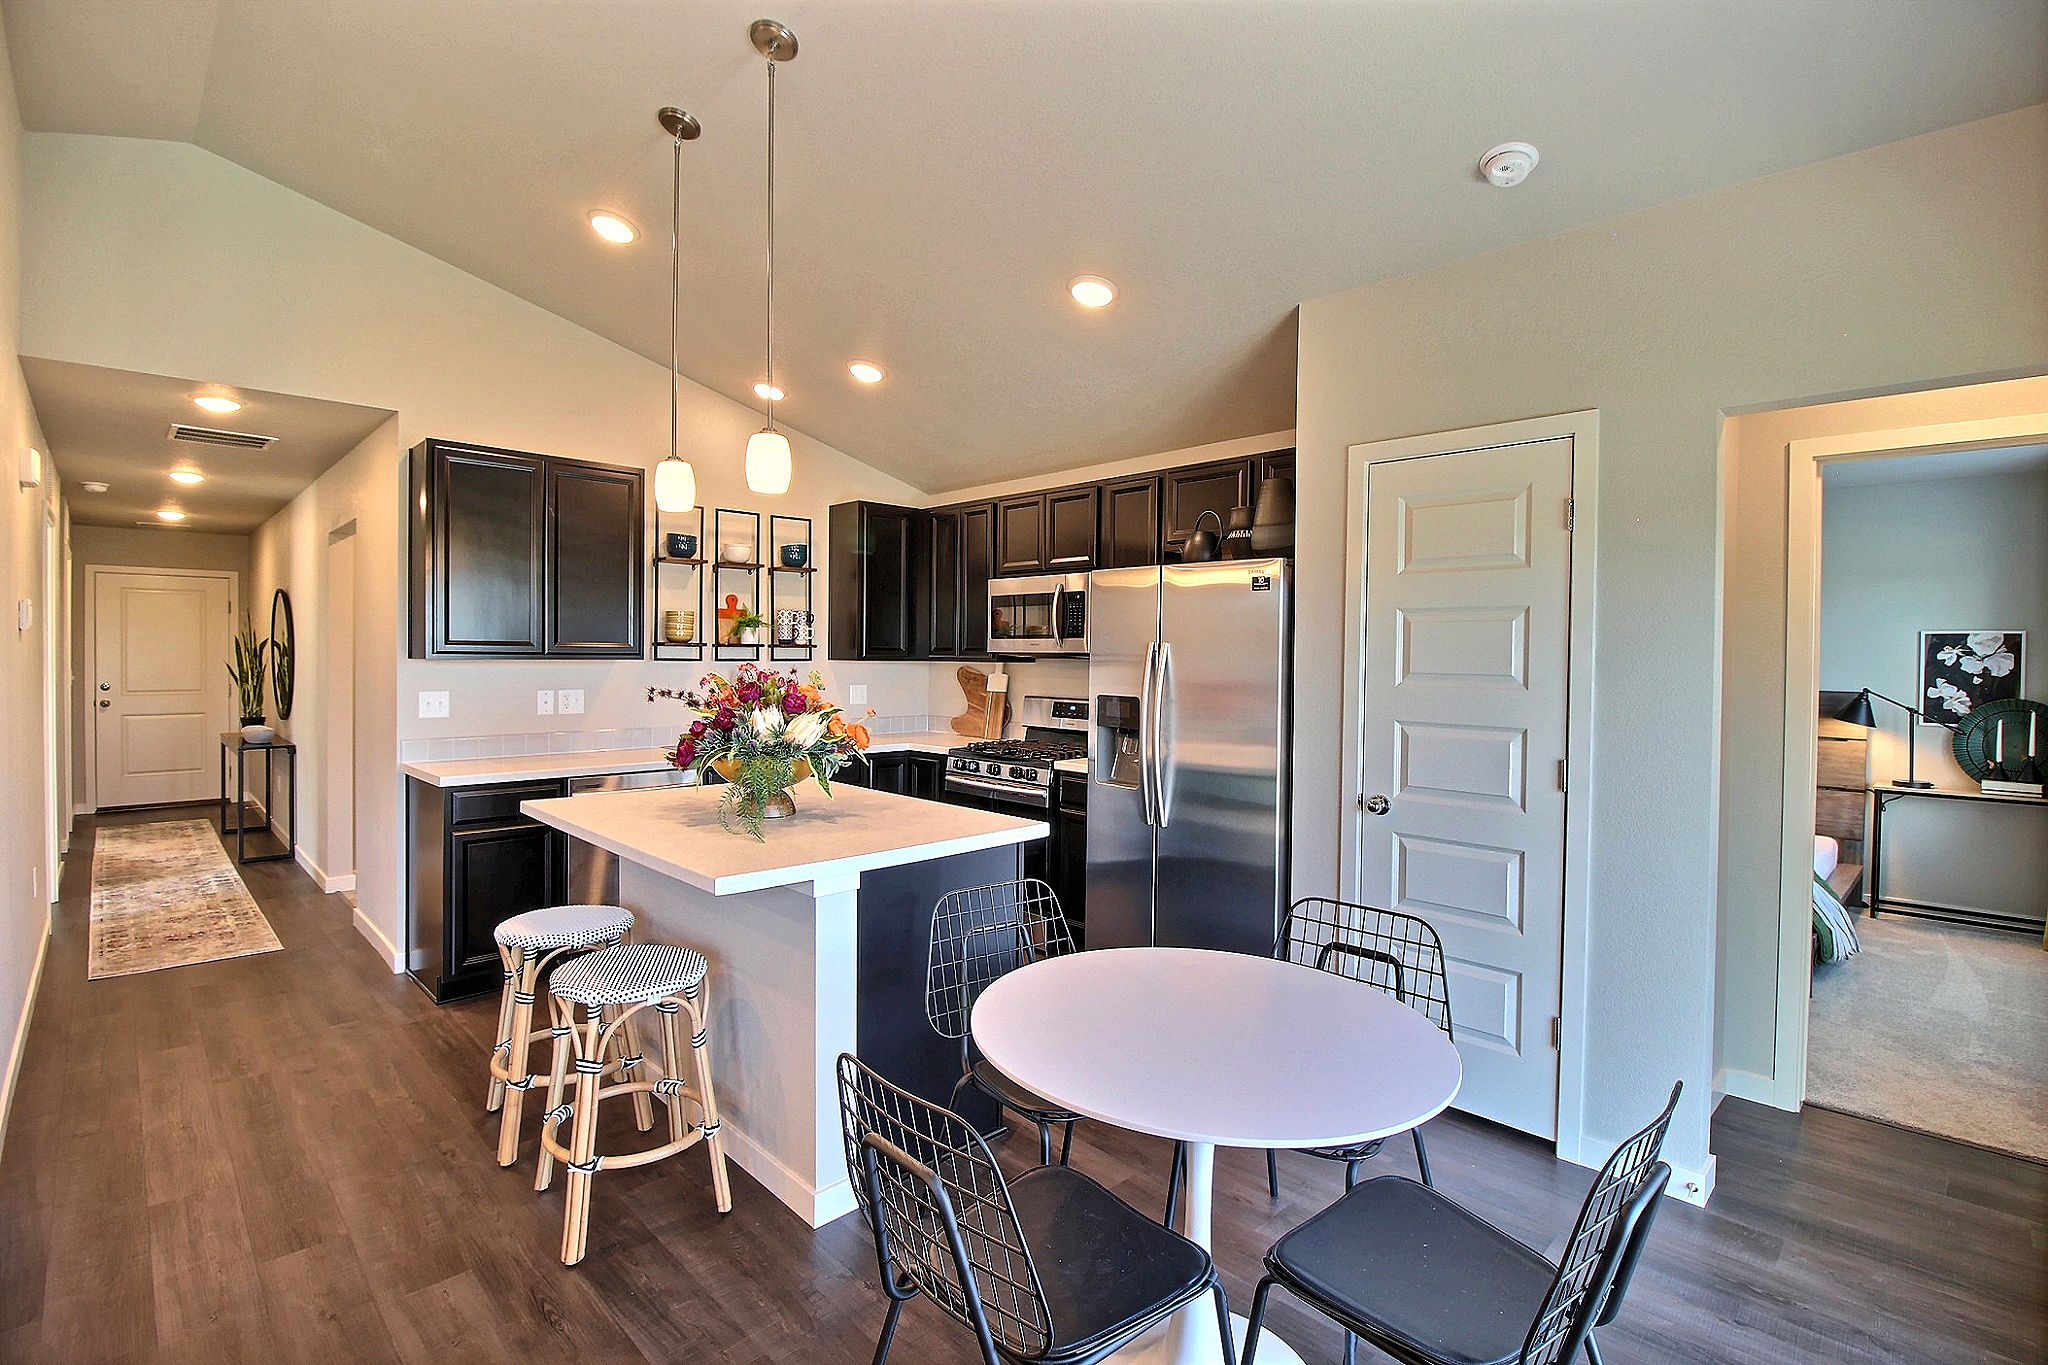 Kitchen featured in the Del Norte By Baessler Homes in Greeley, CO